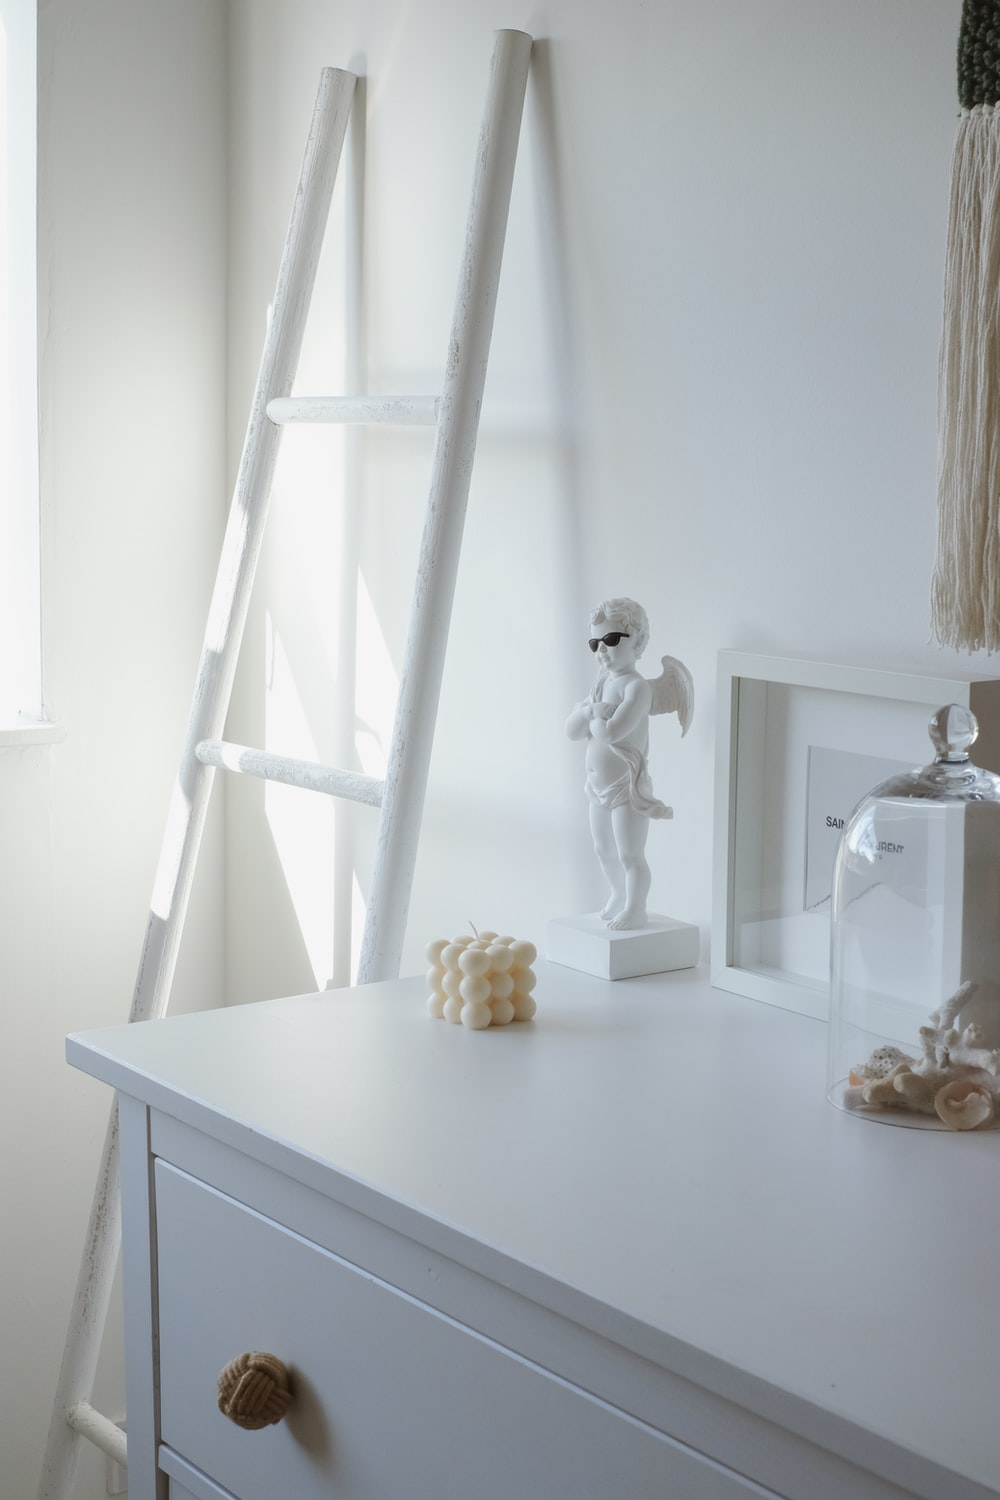 clear glass figurine on table